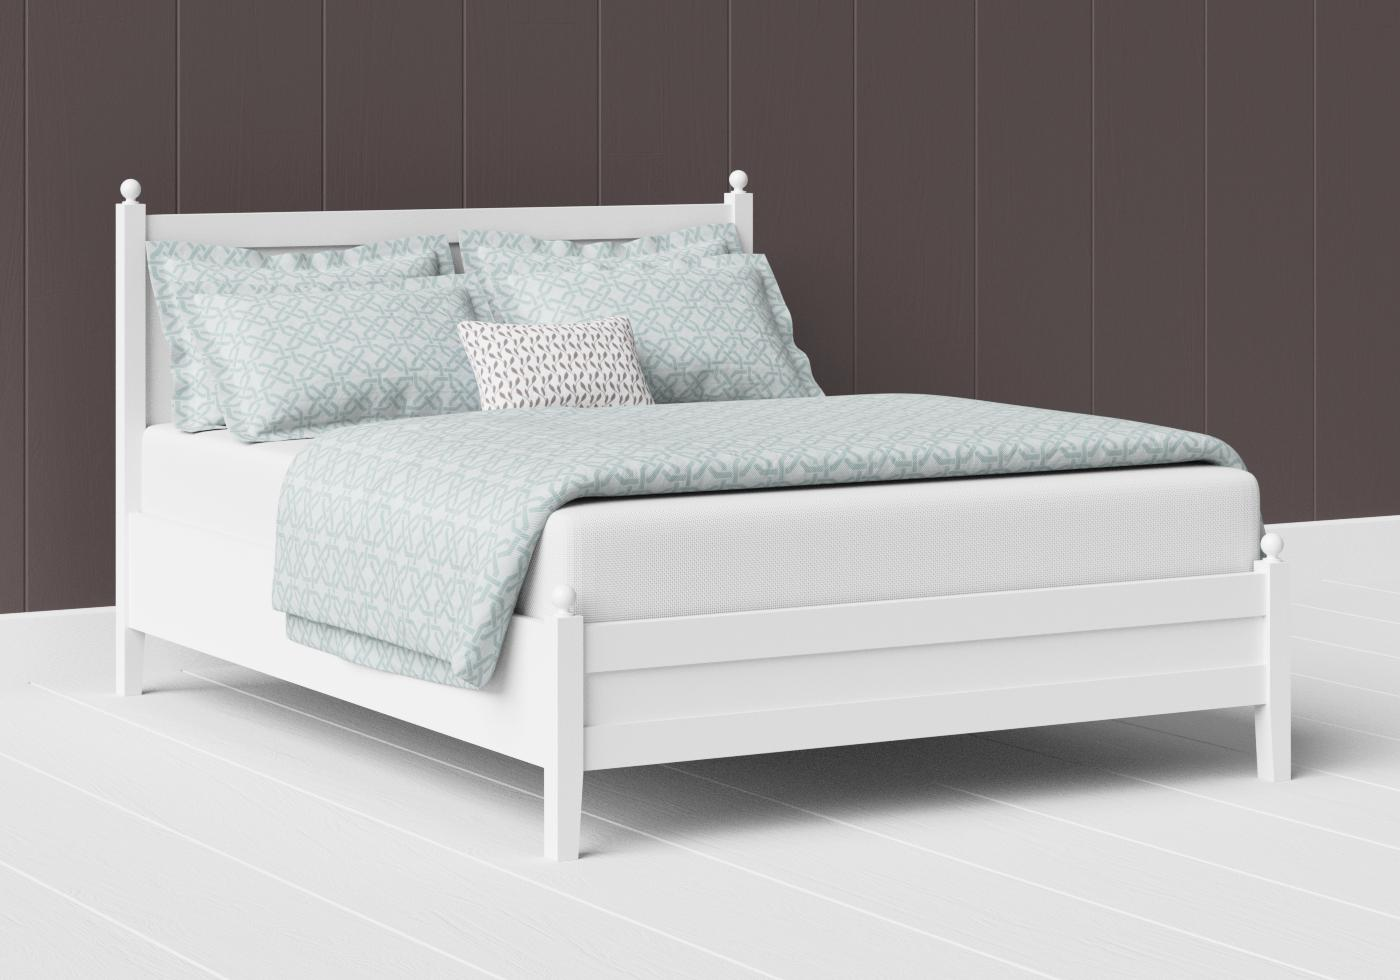 Marbella low footend painted wood bed in satin white